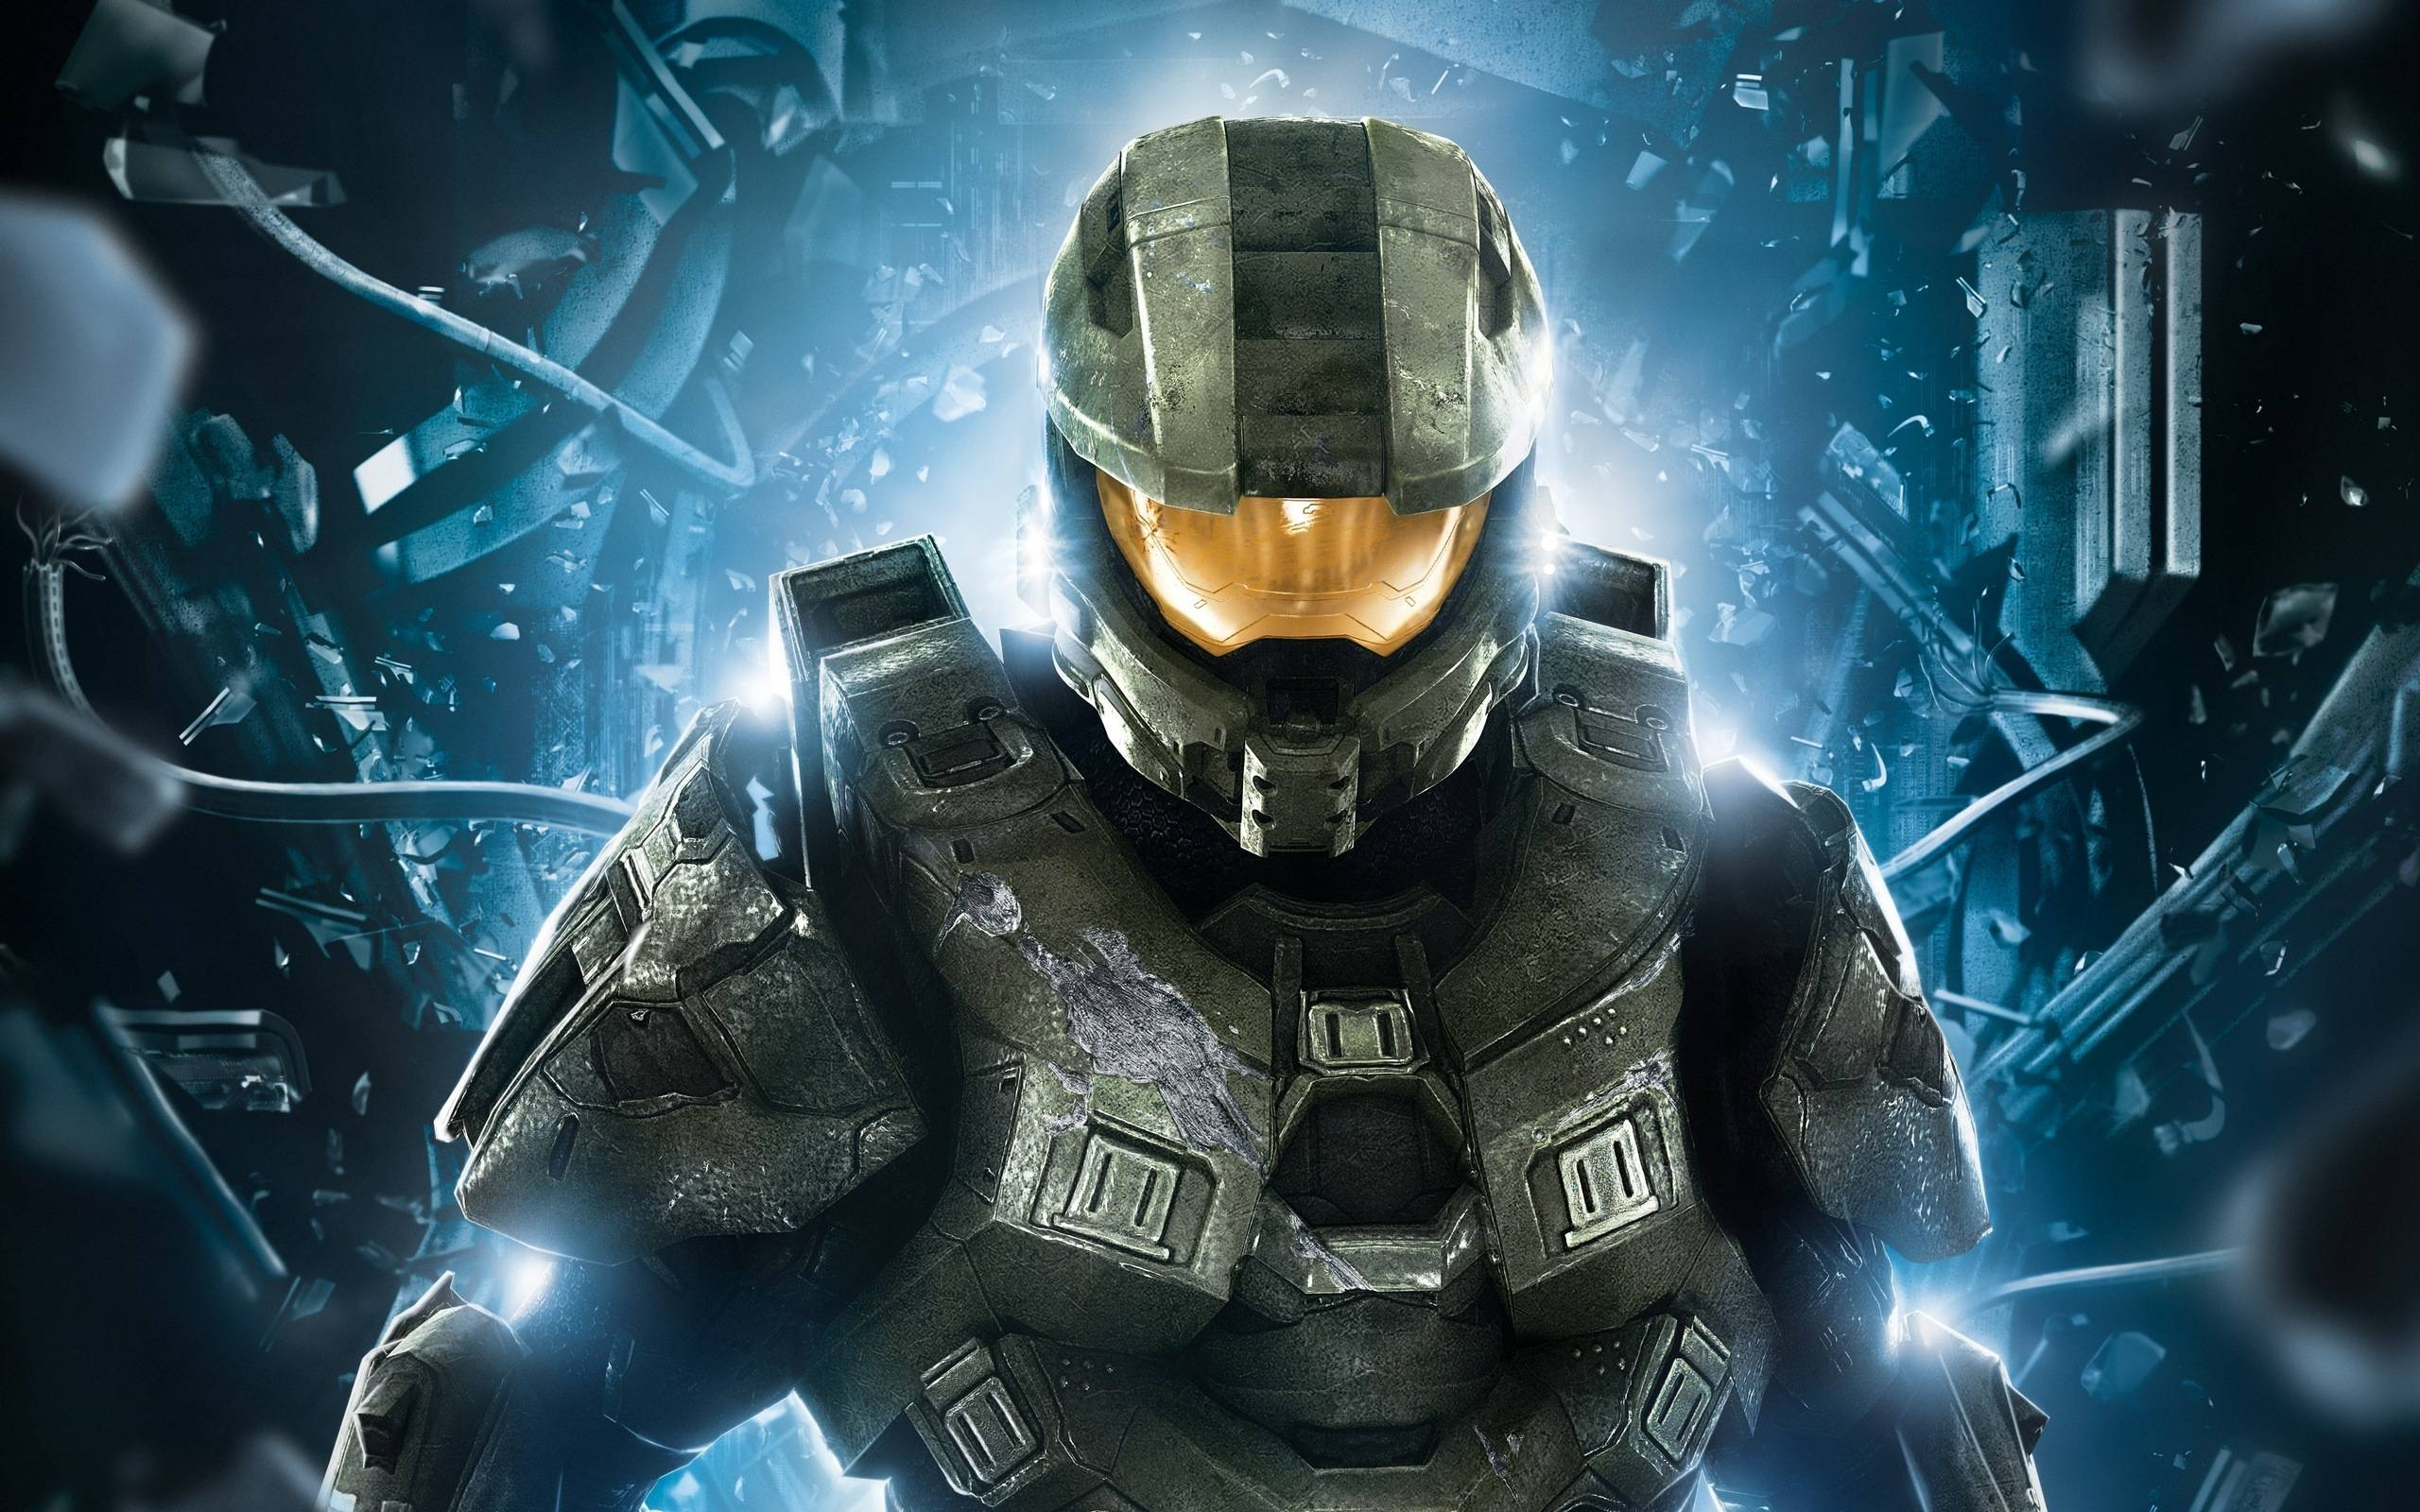 Download Halo 4 Xbox Game Wallpapers HD